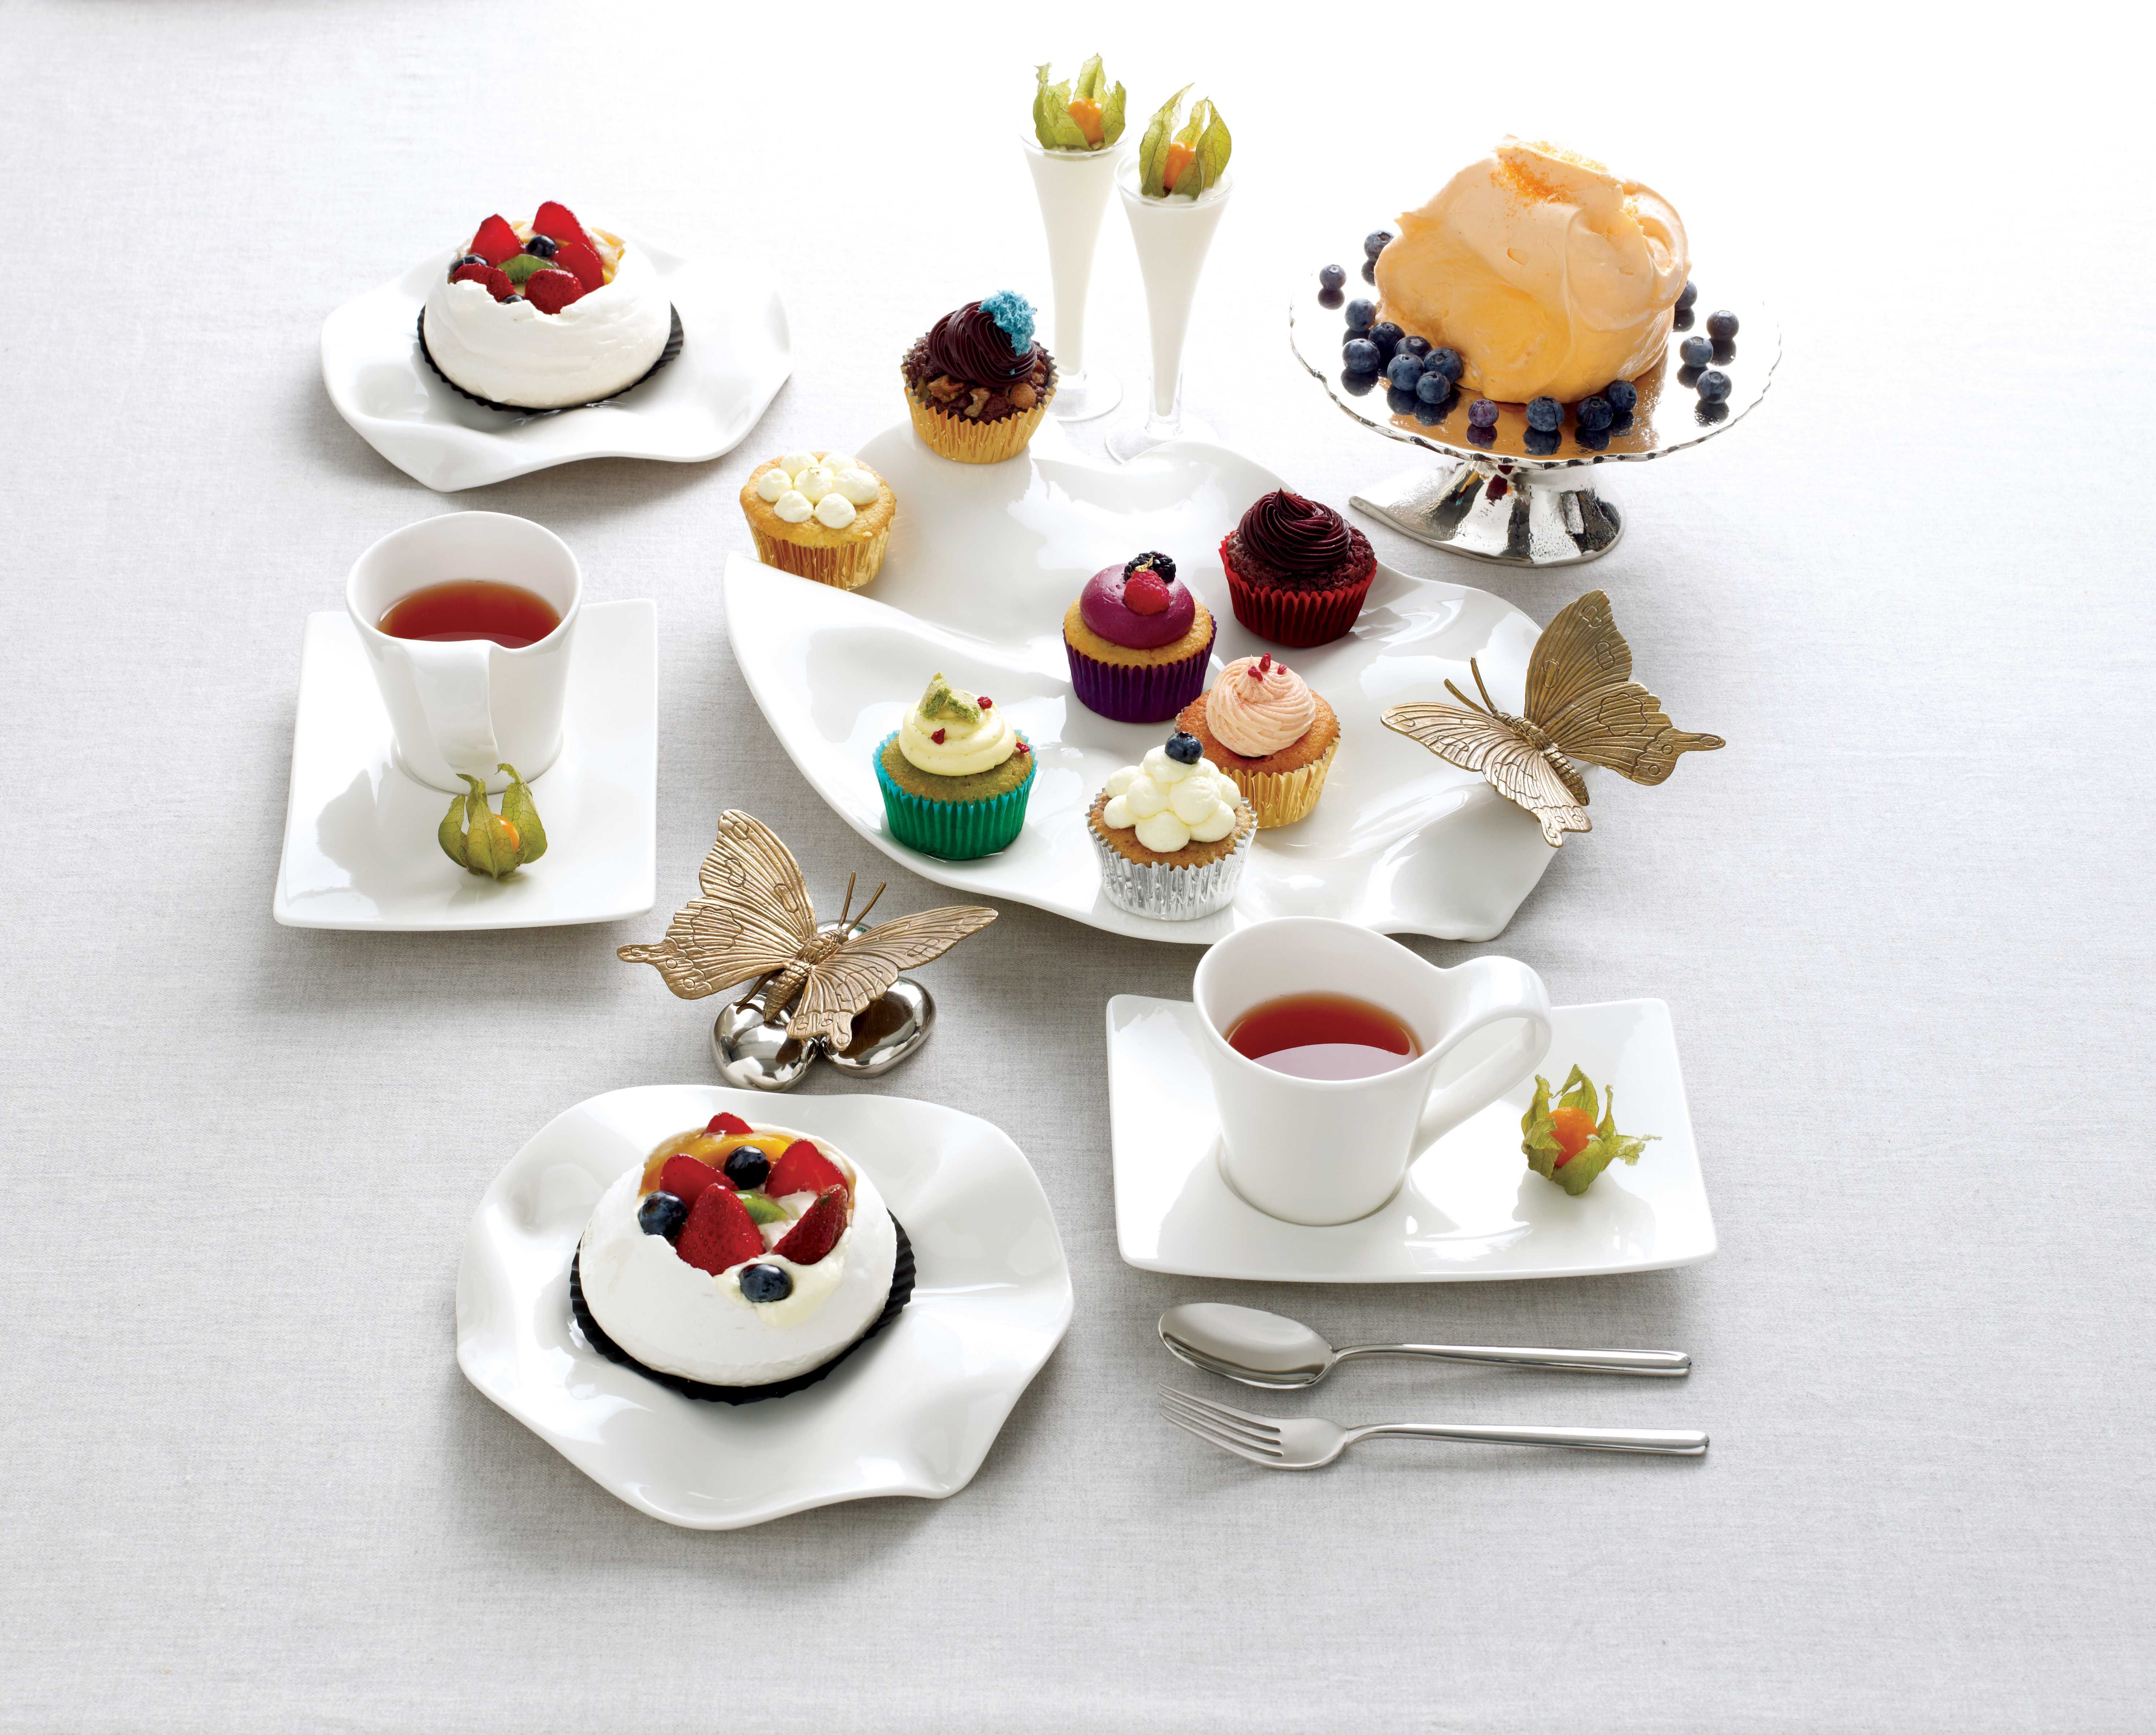 Signature The Mark Of Culinary Distinction Tastefully Created For A Uniquely Polished Showcase Luzerne Signature White C Culinary Fine Dining Tea Party